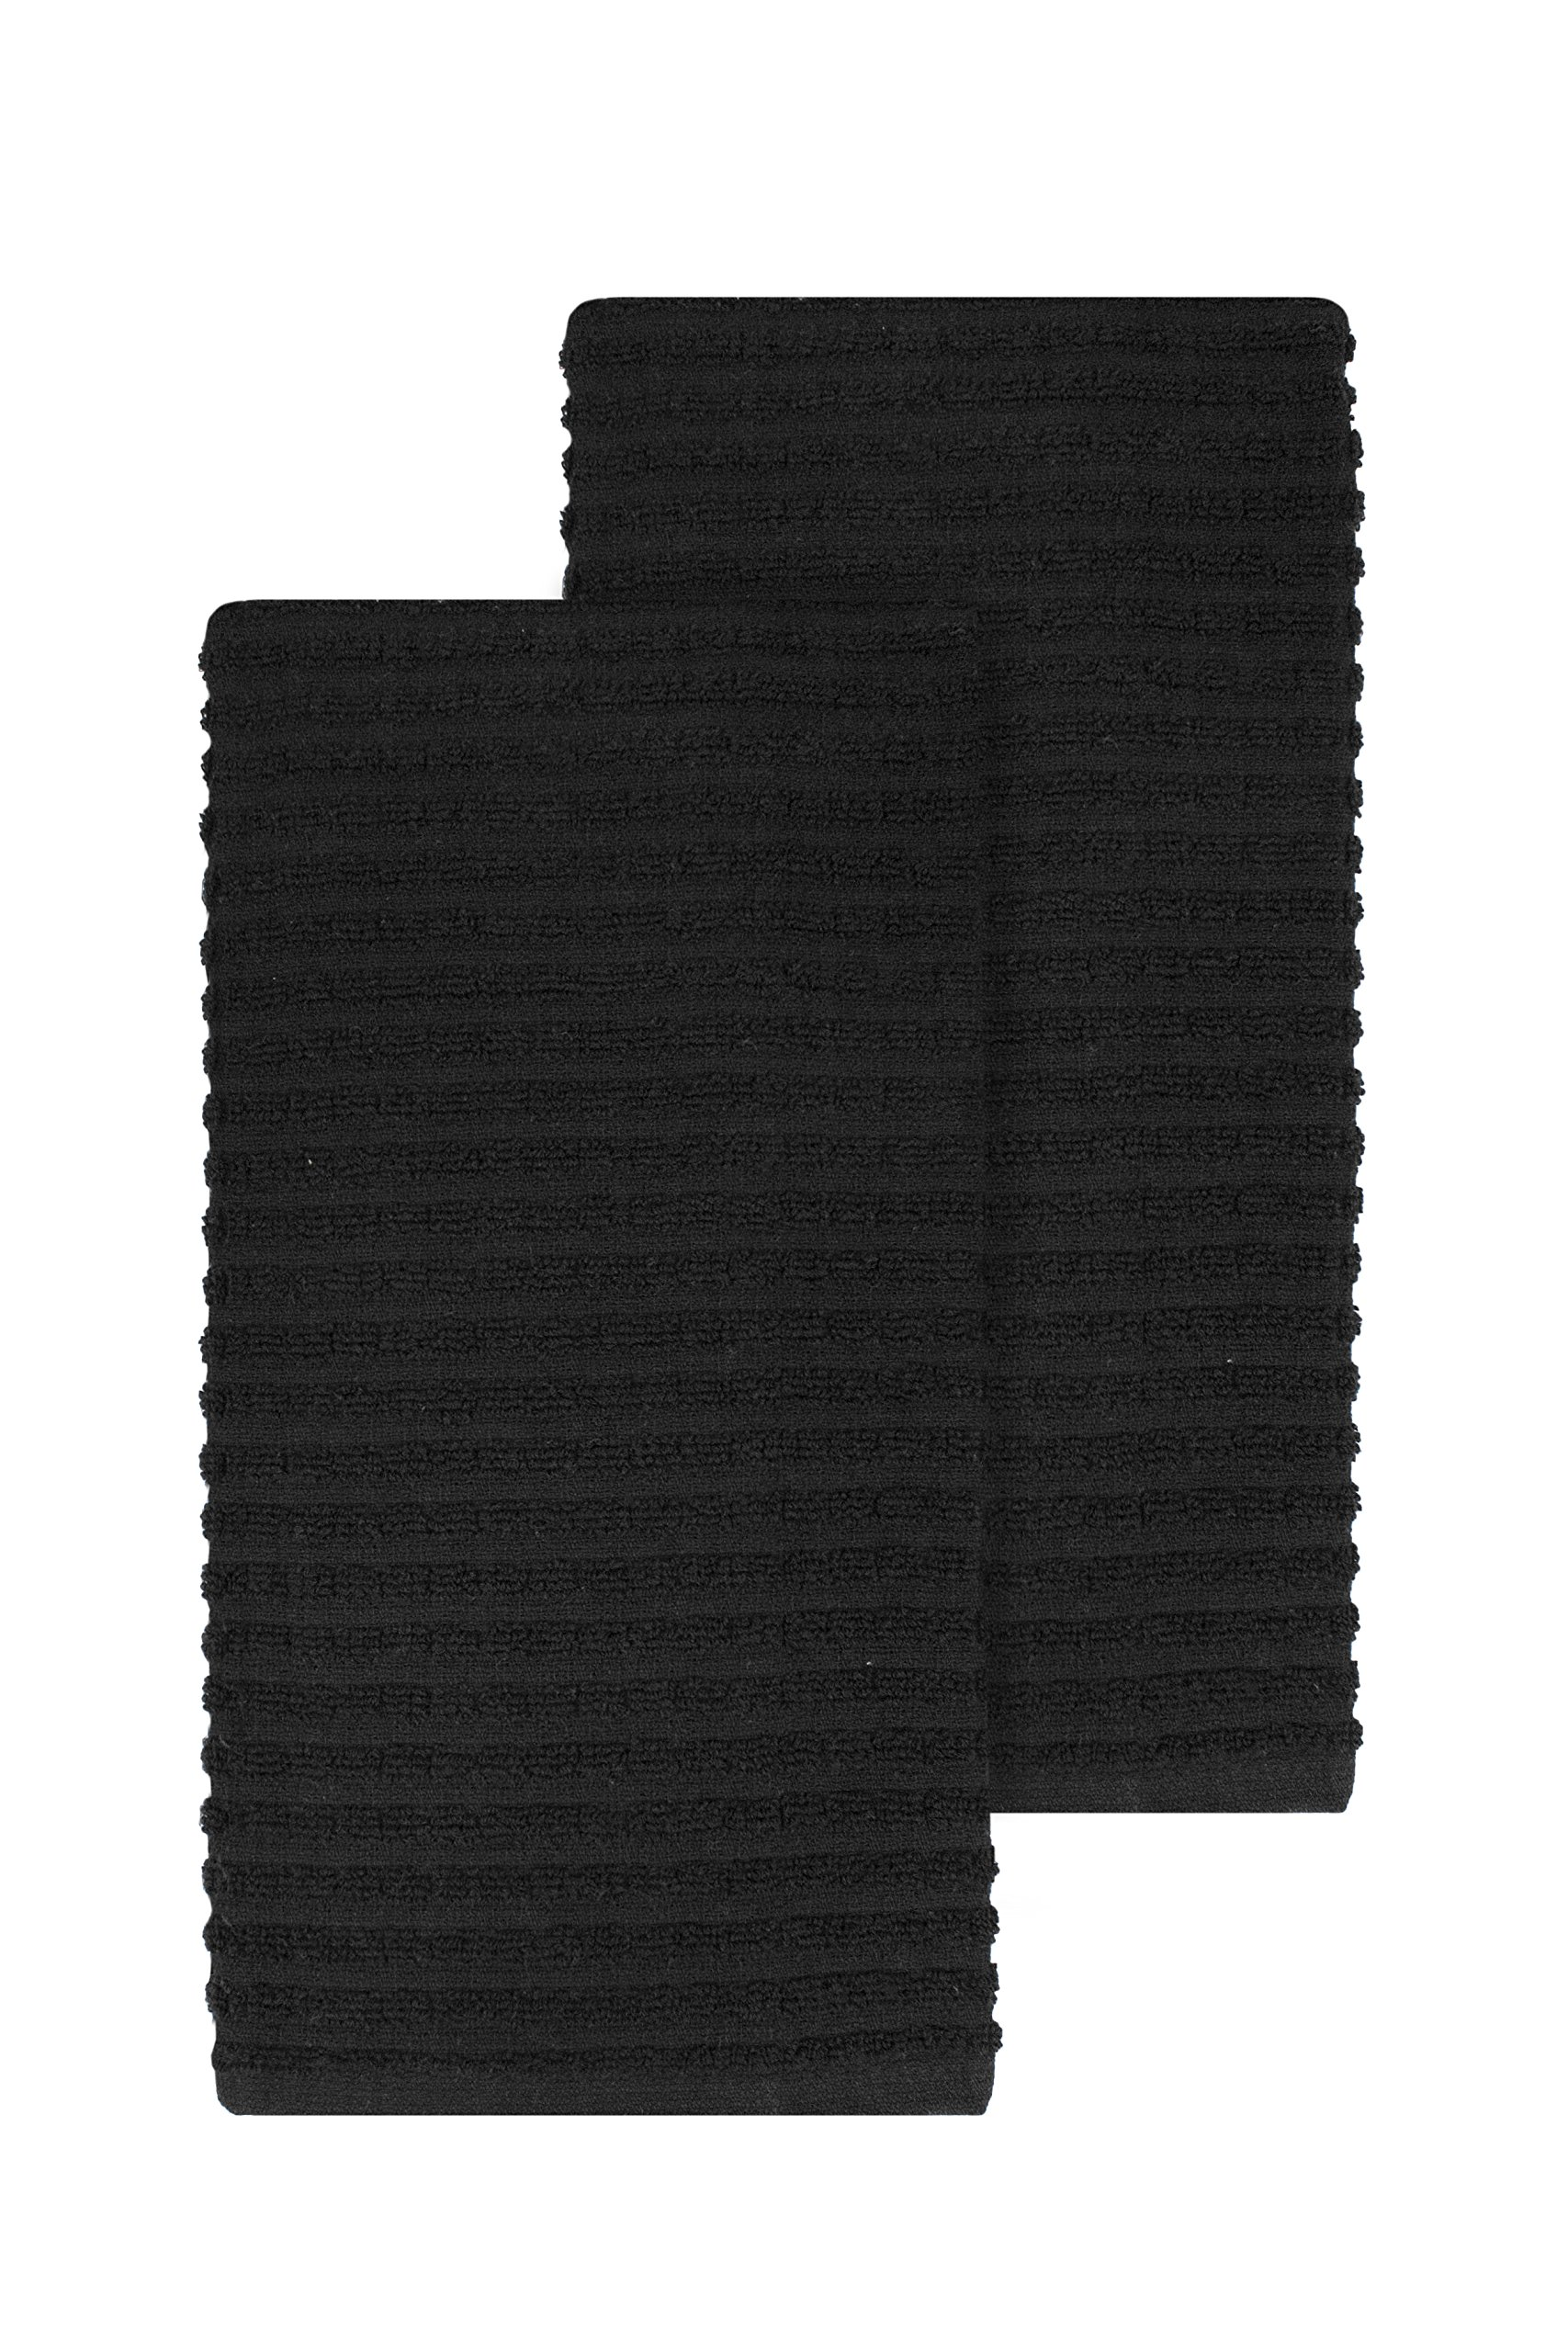 Ritz Royale Collection 100% Combed Terry Cotton, Highly Absorbent, Oversized, Kitchen Towel Set, 28'' x 18'', 2-Pack, Solid Black